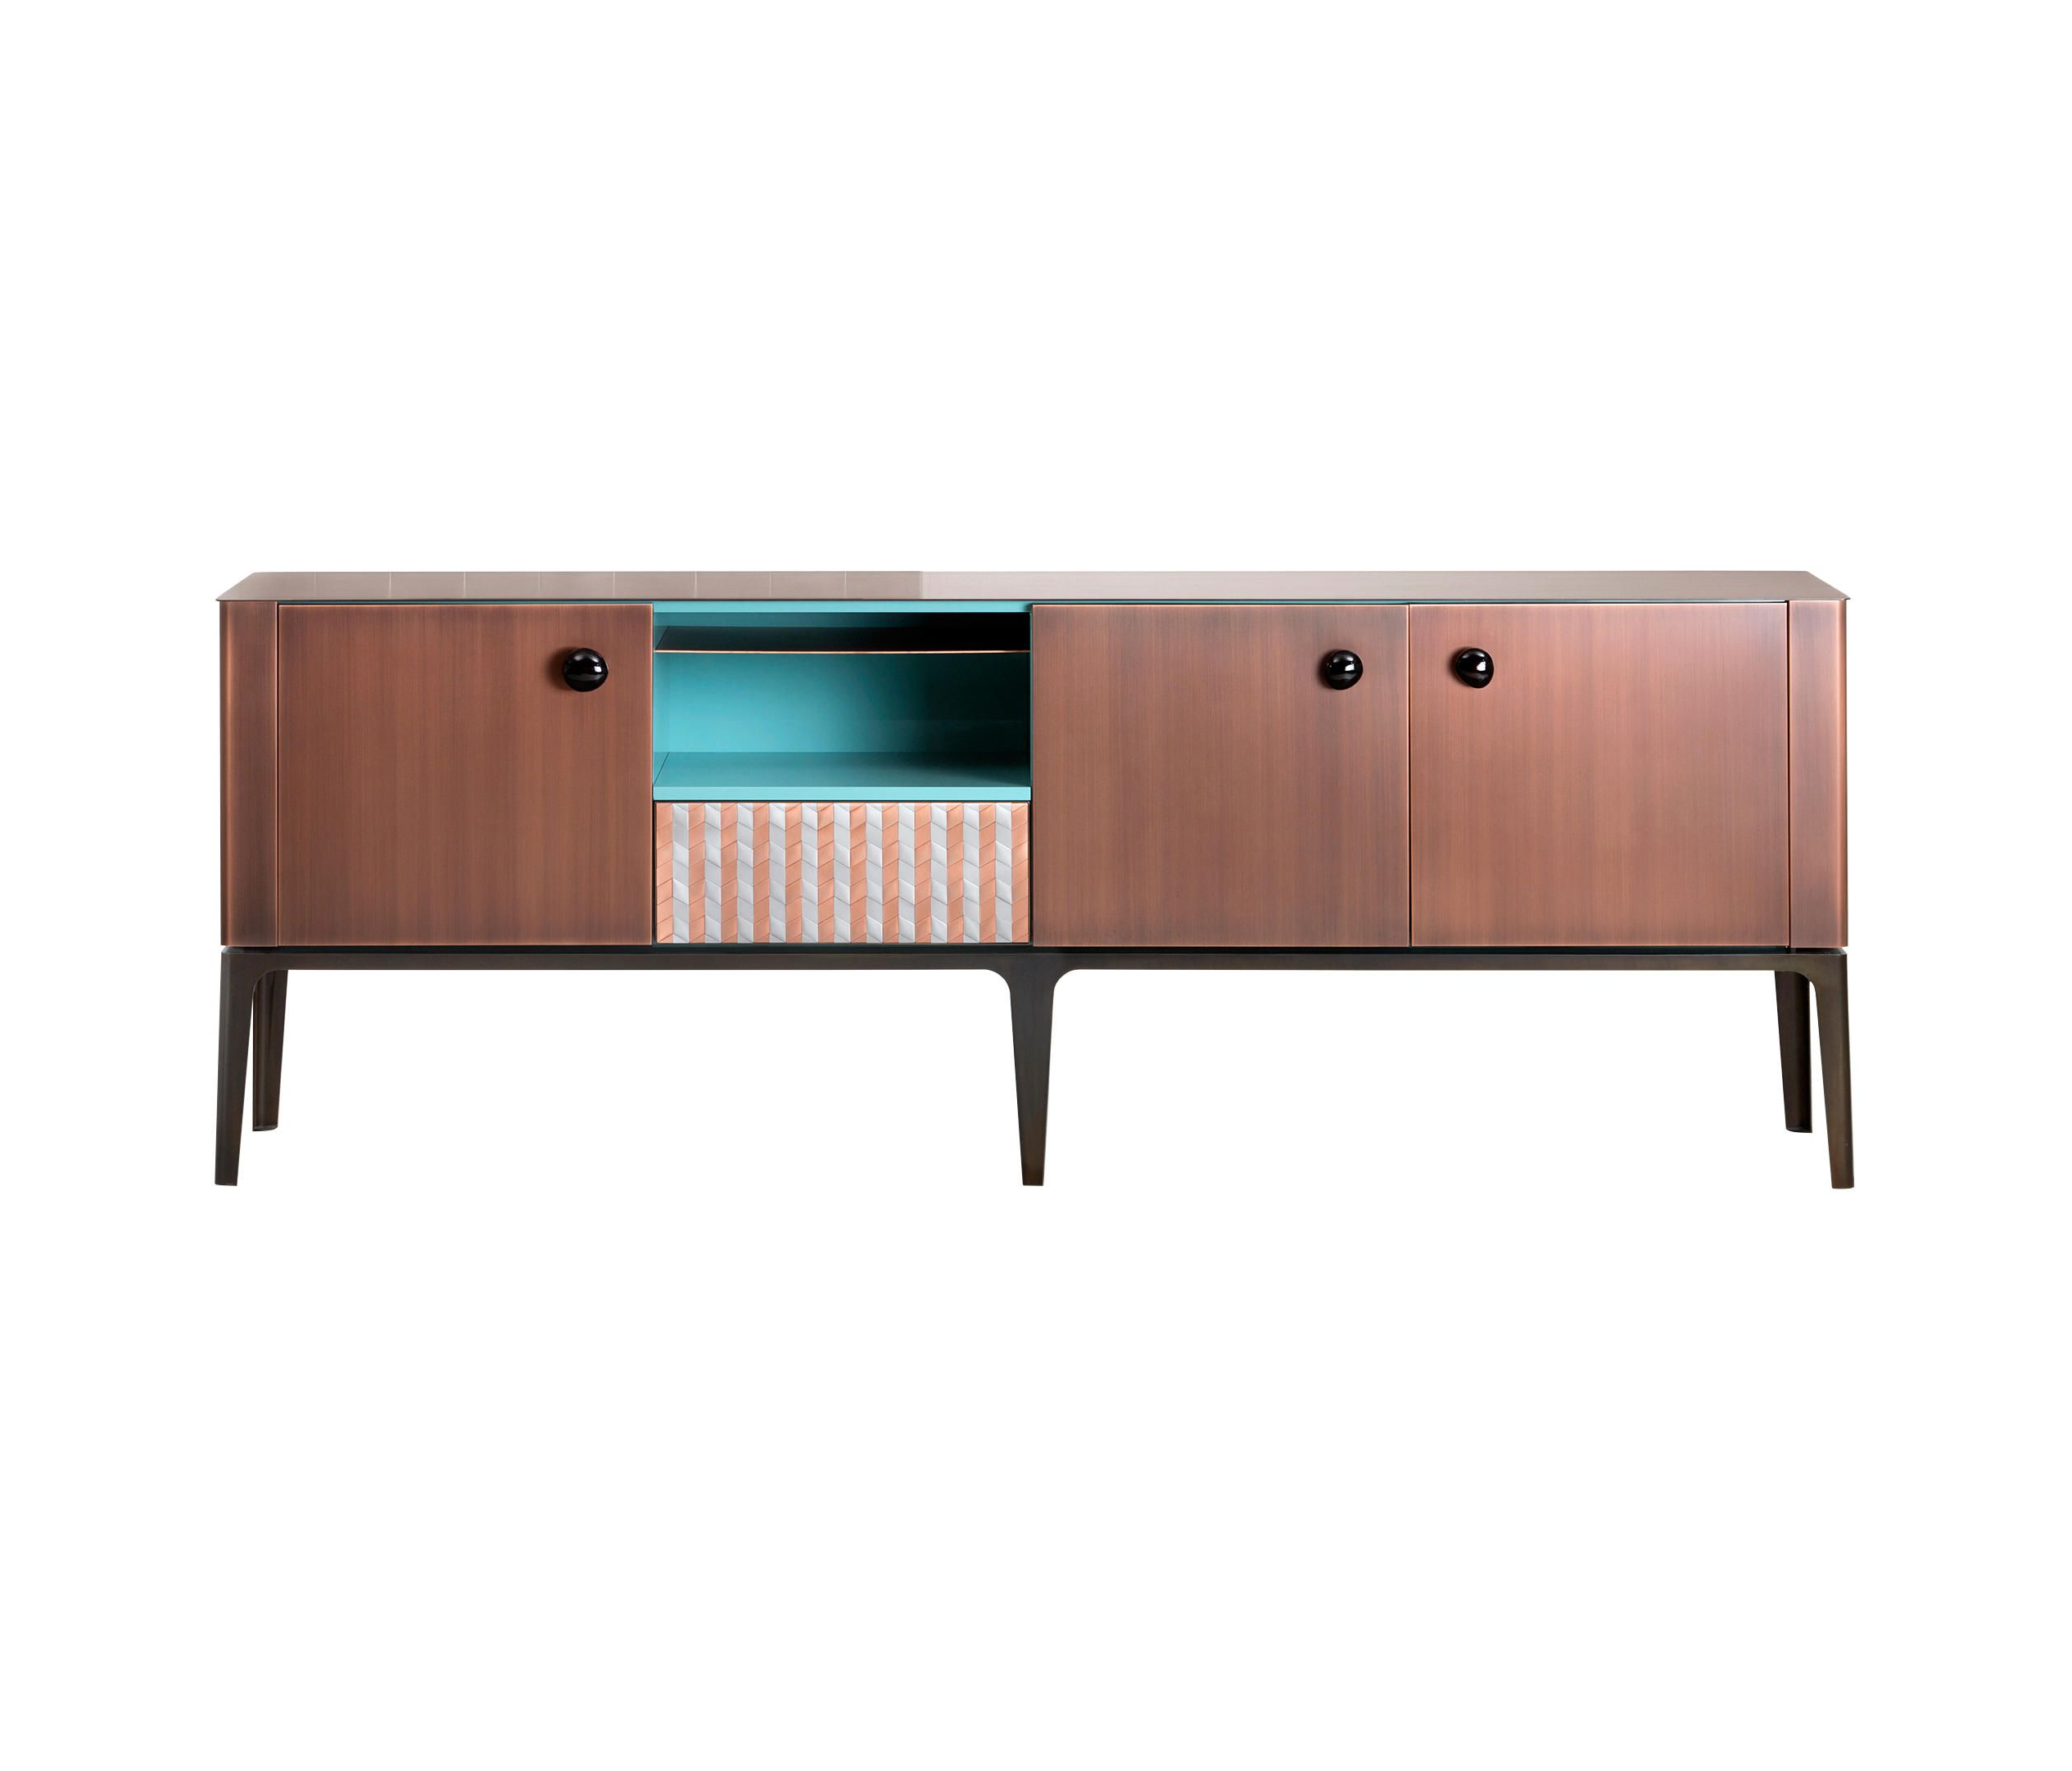 Gioiellode Castelli | Sideboards | Mobili / Furniture Throughout Castelli Sideboards (Gallery 6 of 20)